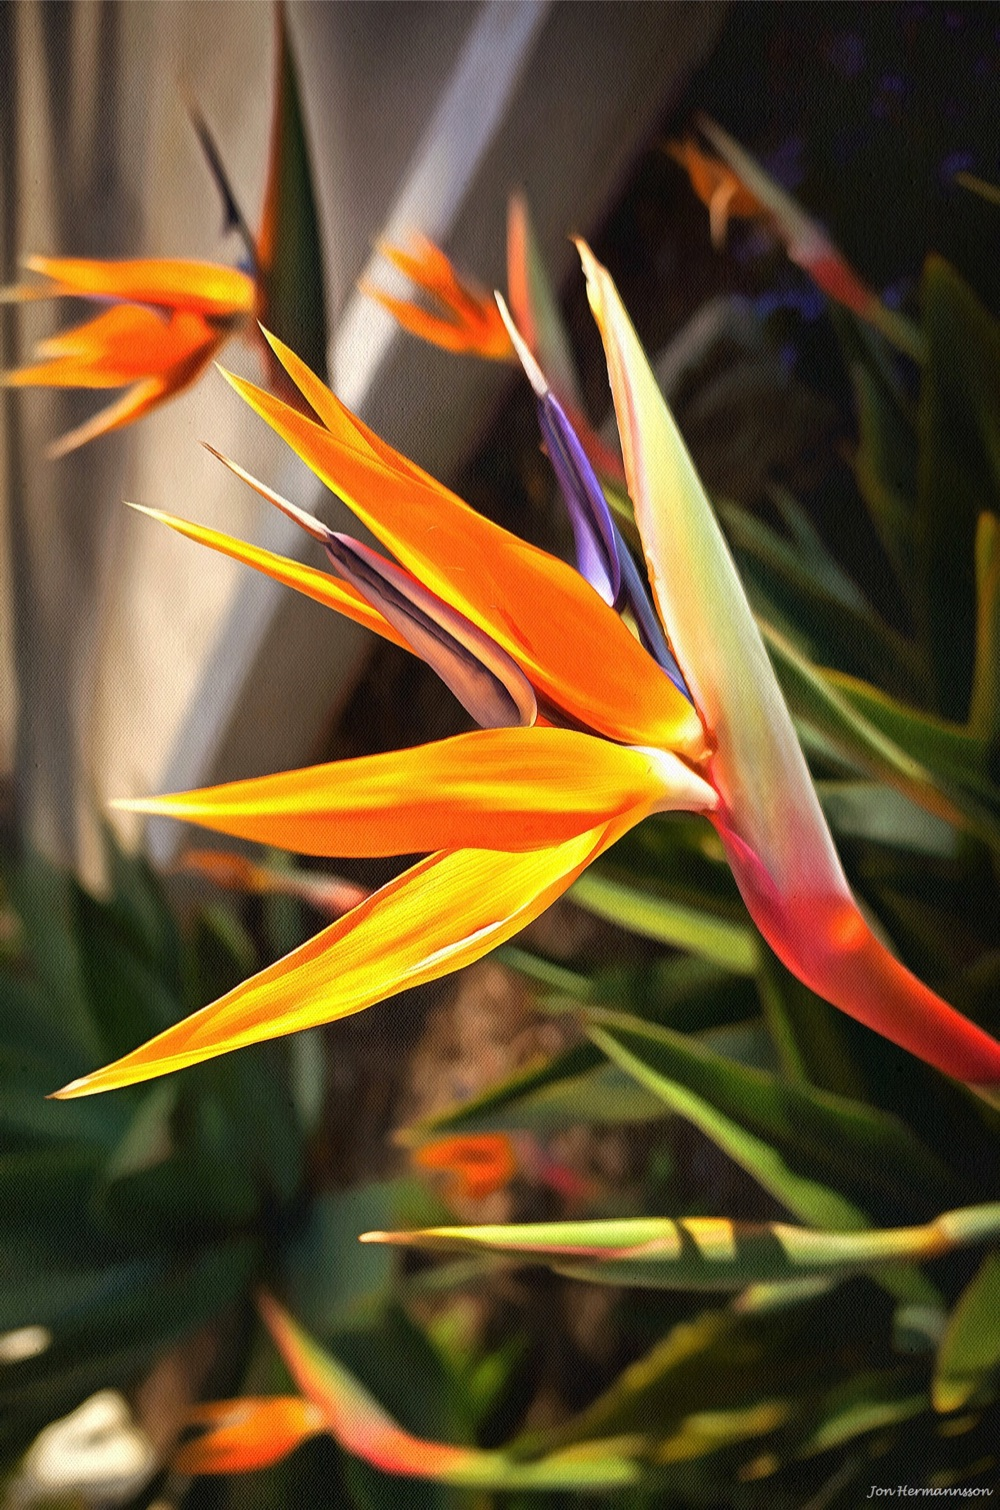 DSC00700-bird of paradise - jon hermannsson